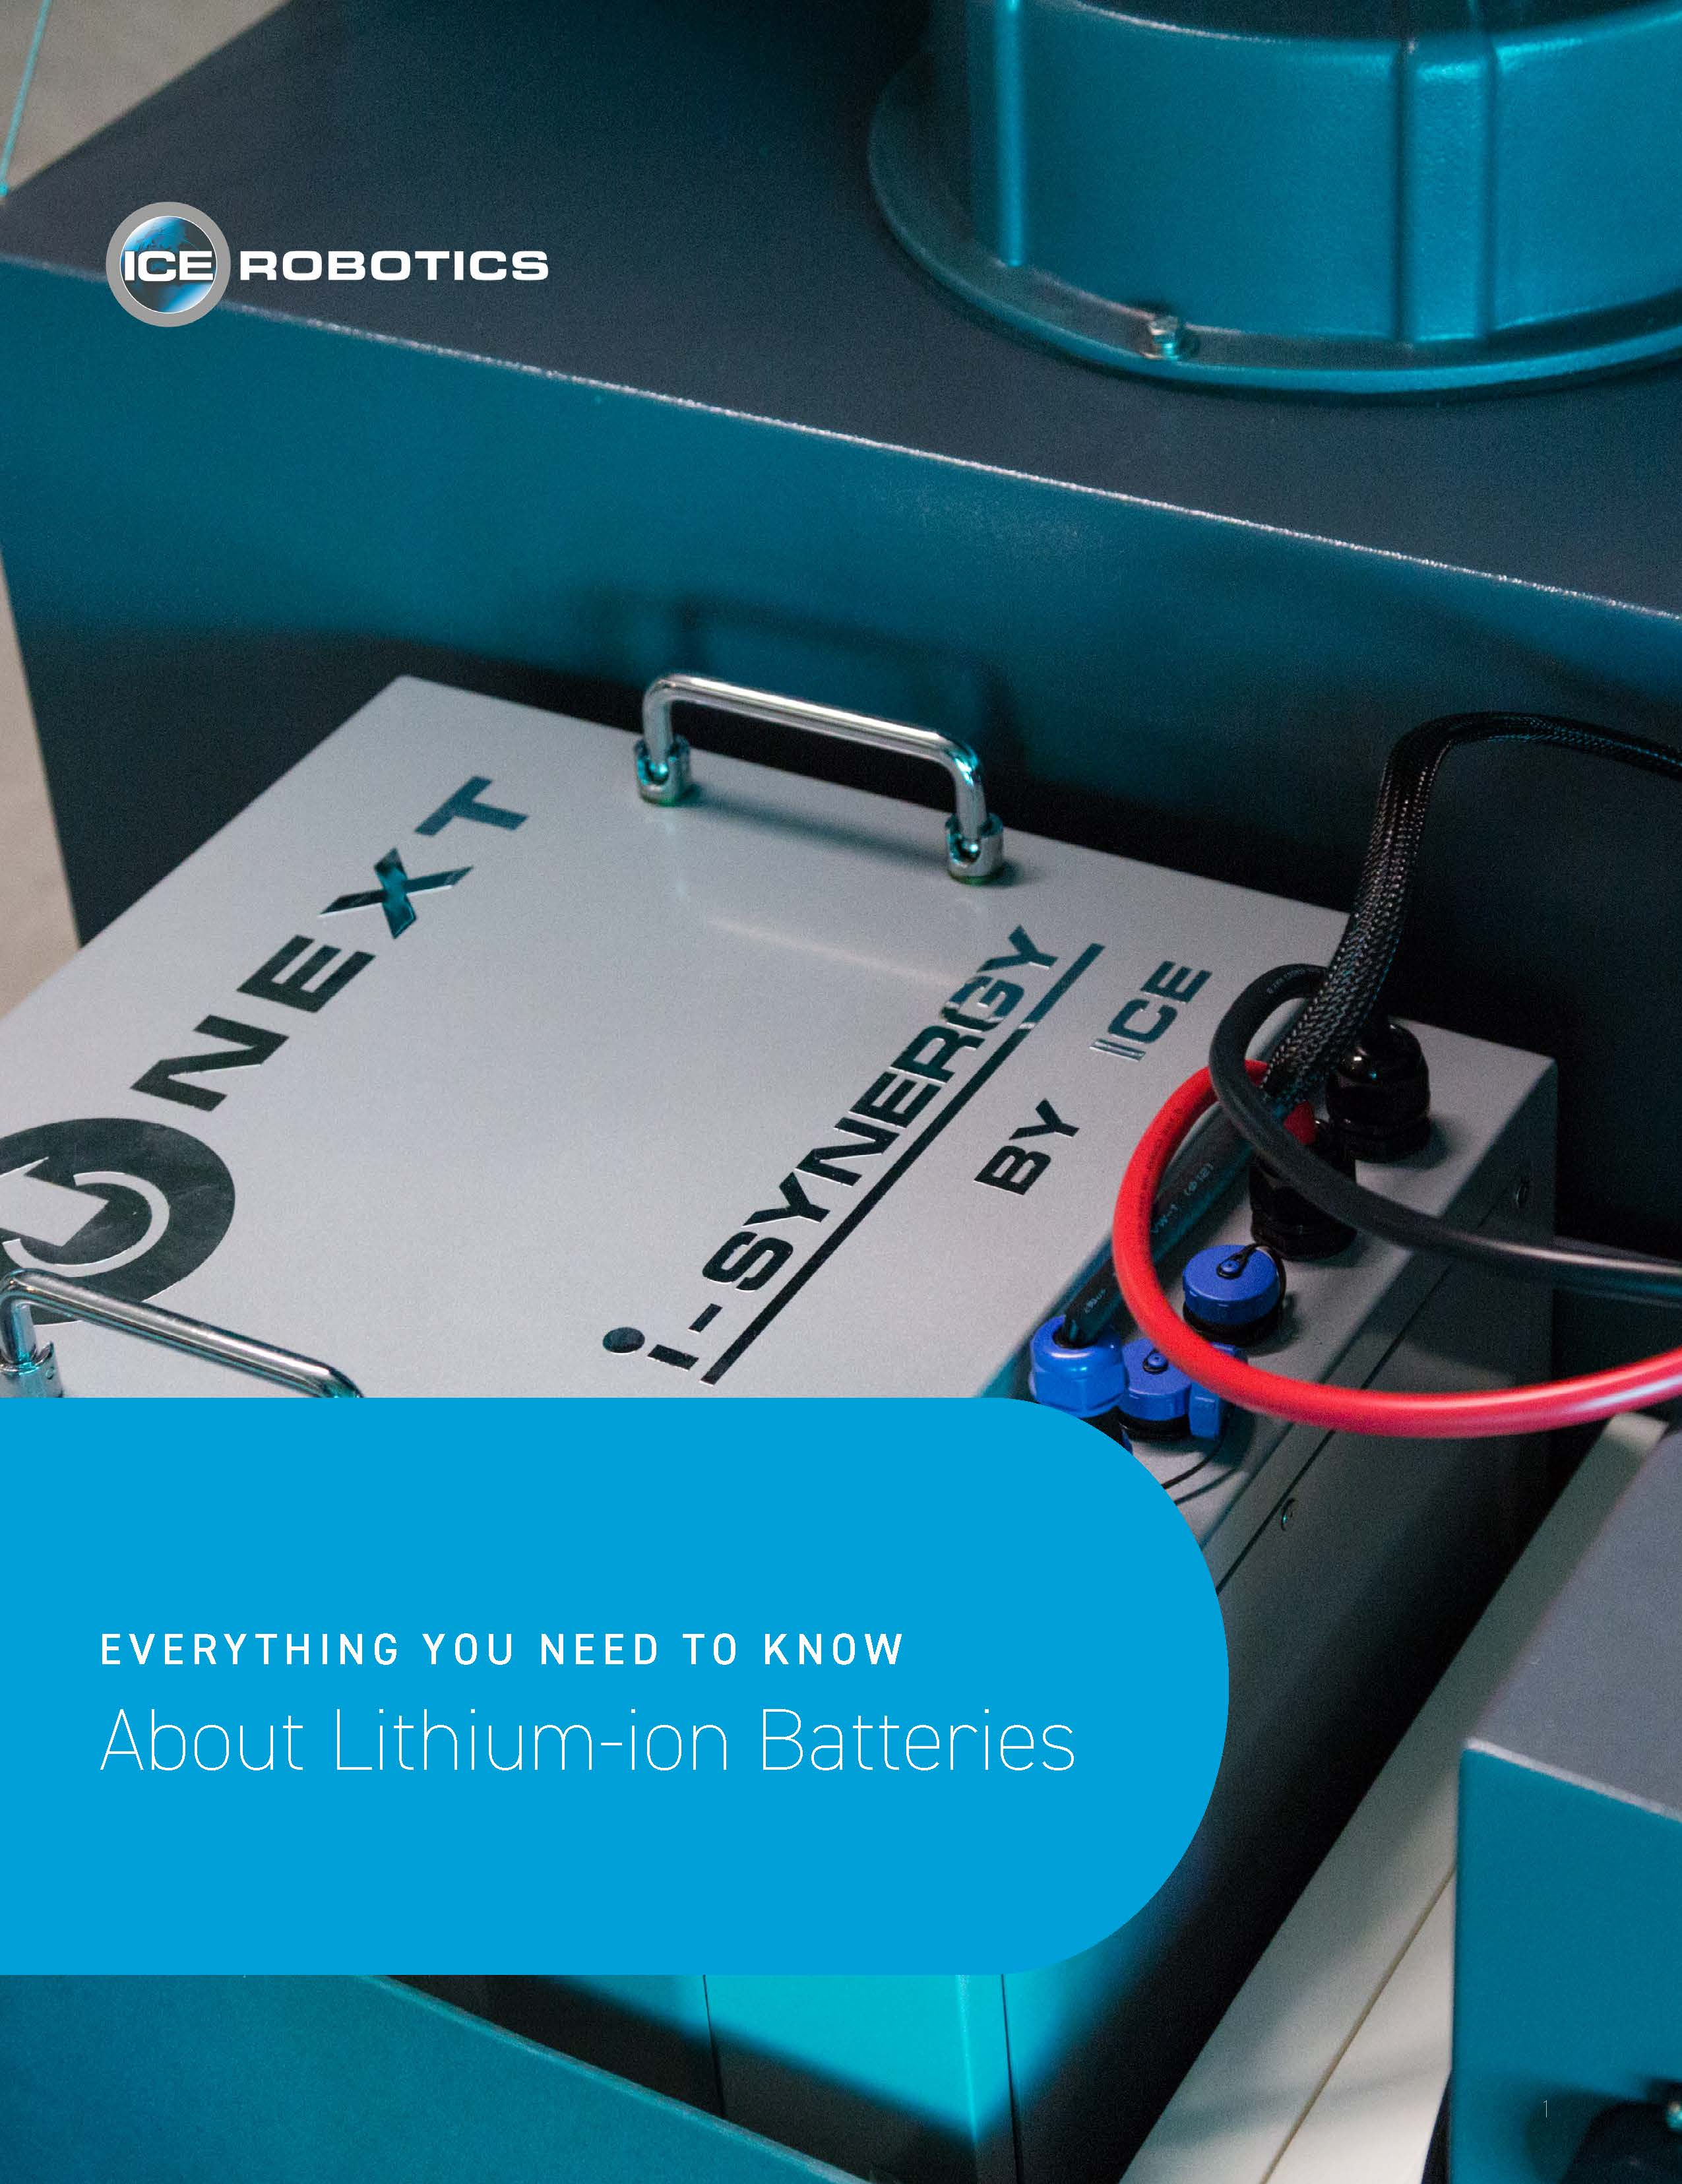 image of  lithium-ion battery in a floor cleaning machine